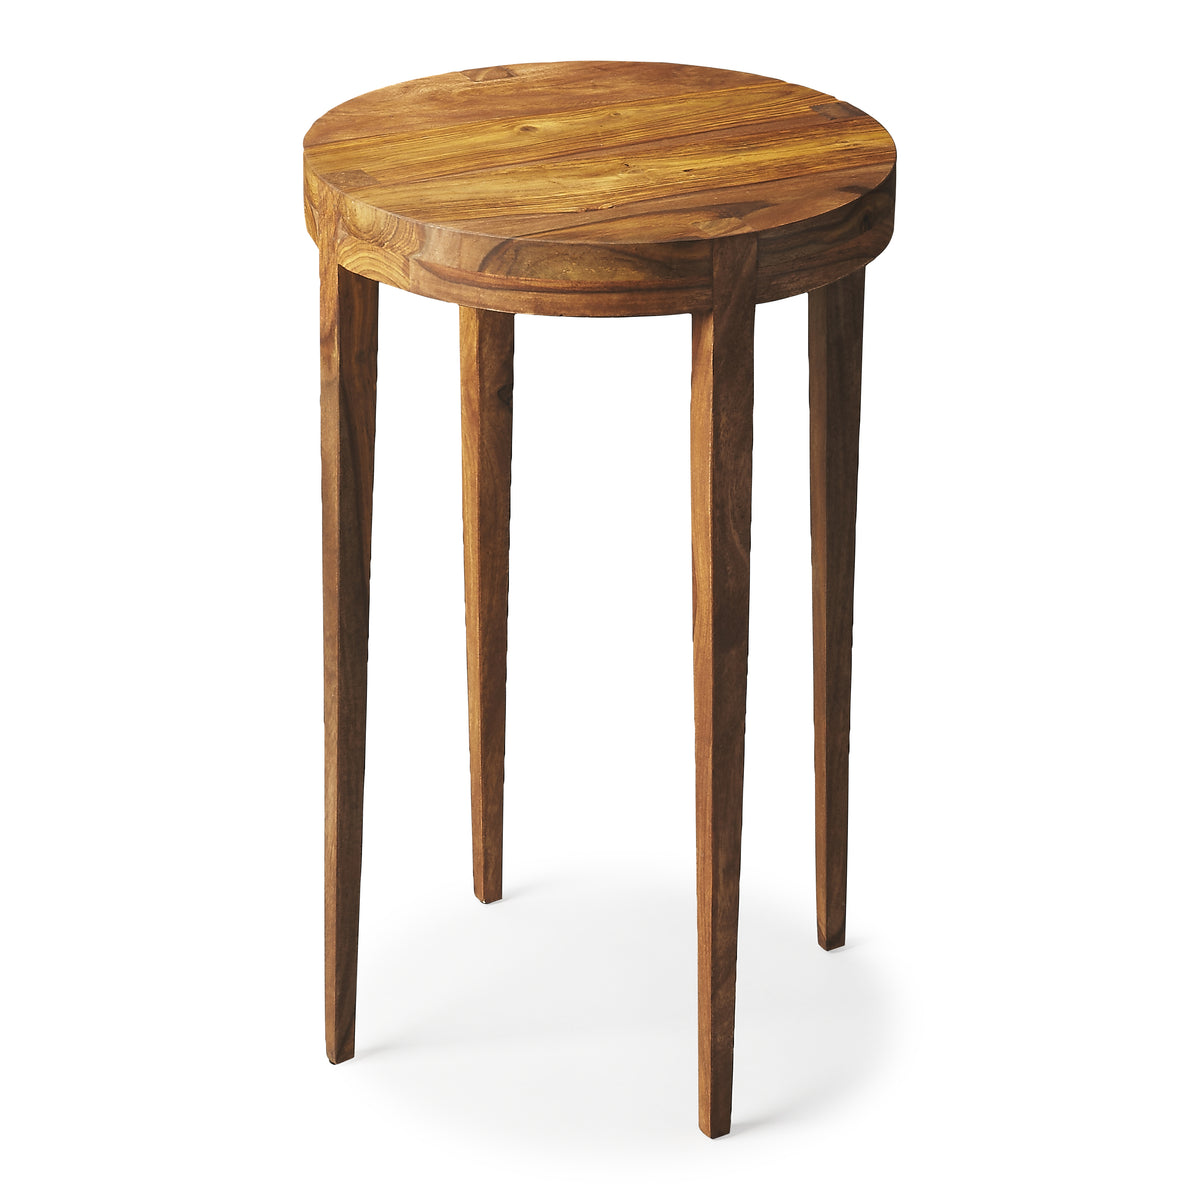 CAGNEY - SOLID WOOD - ACCENT TABLE